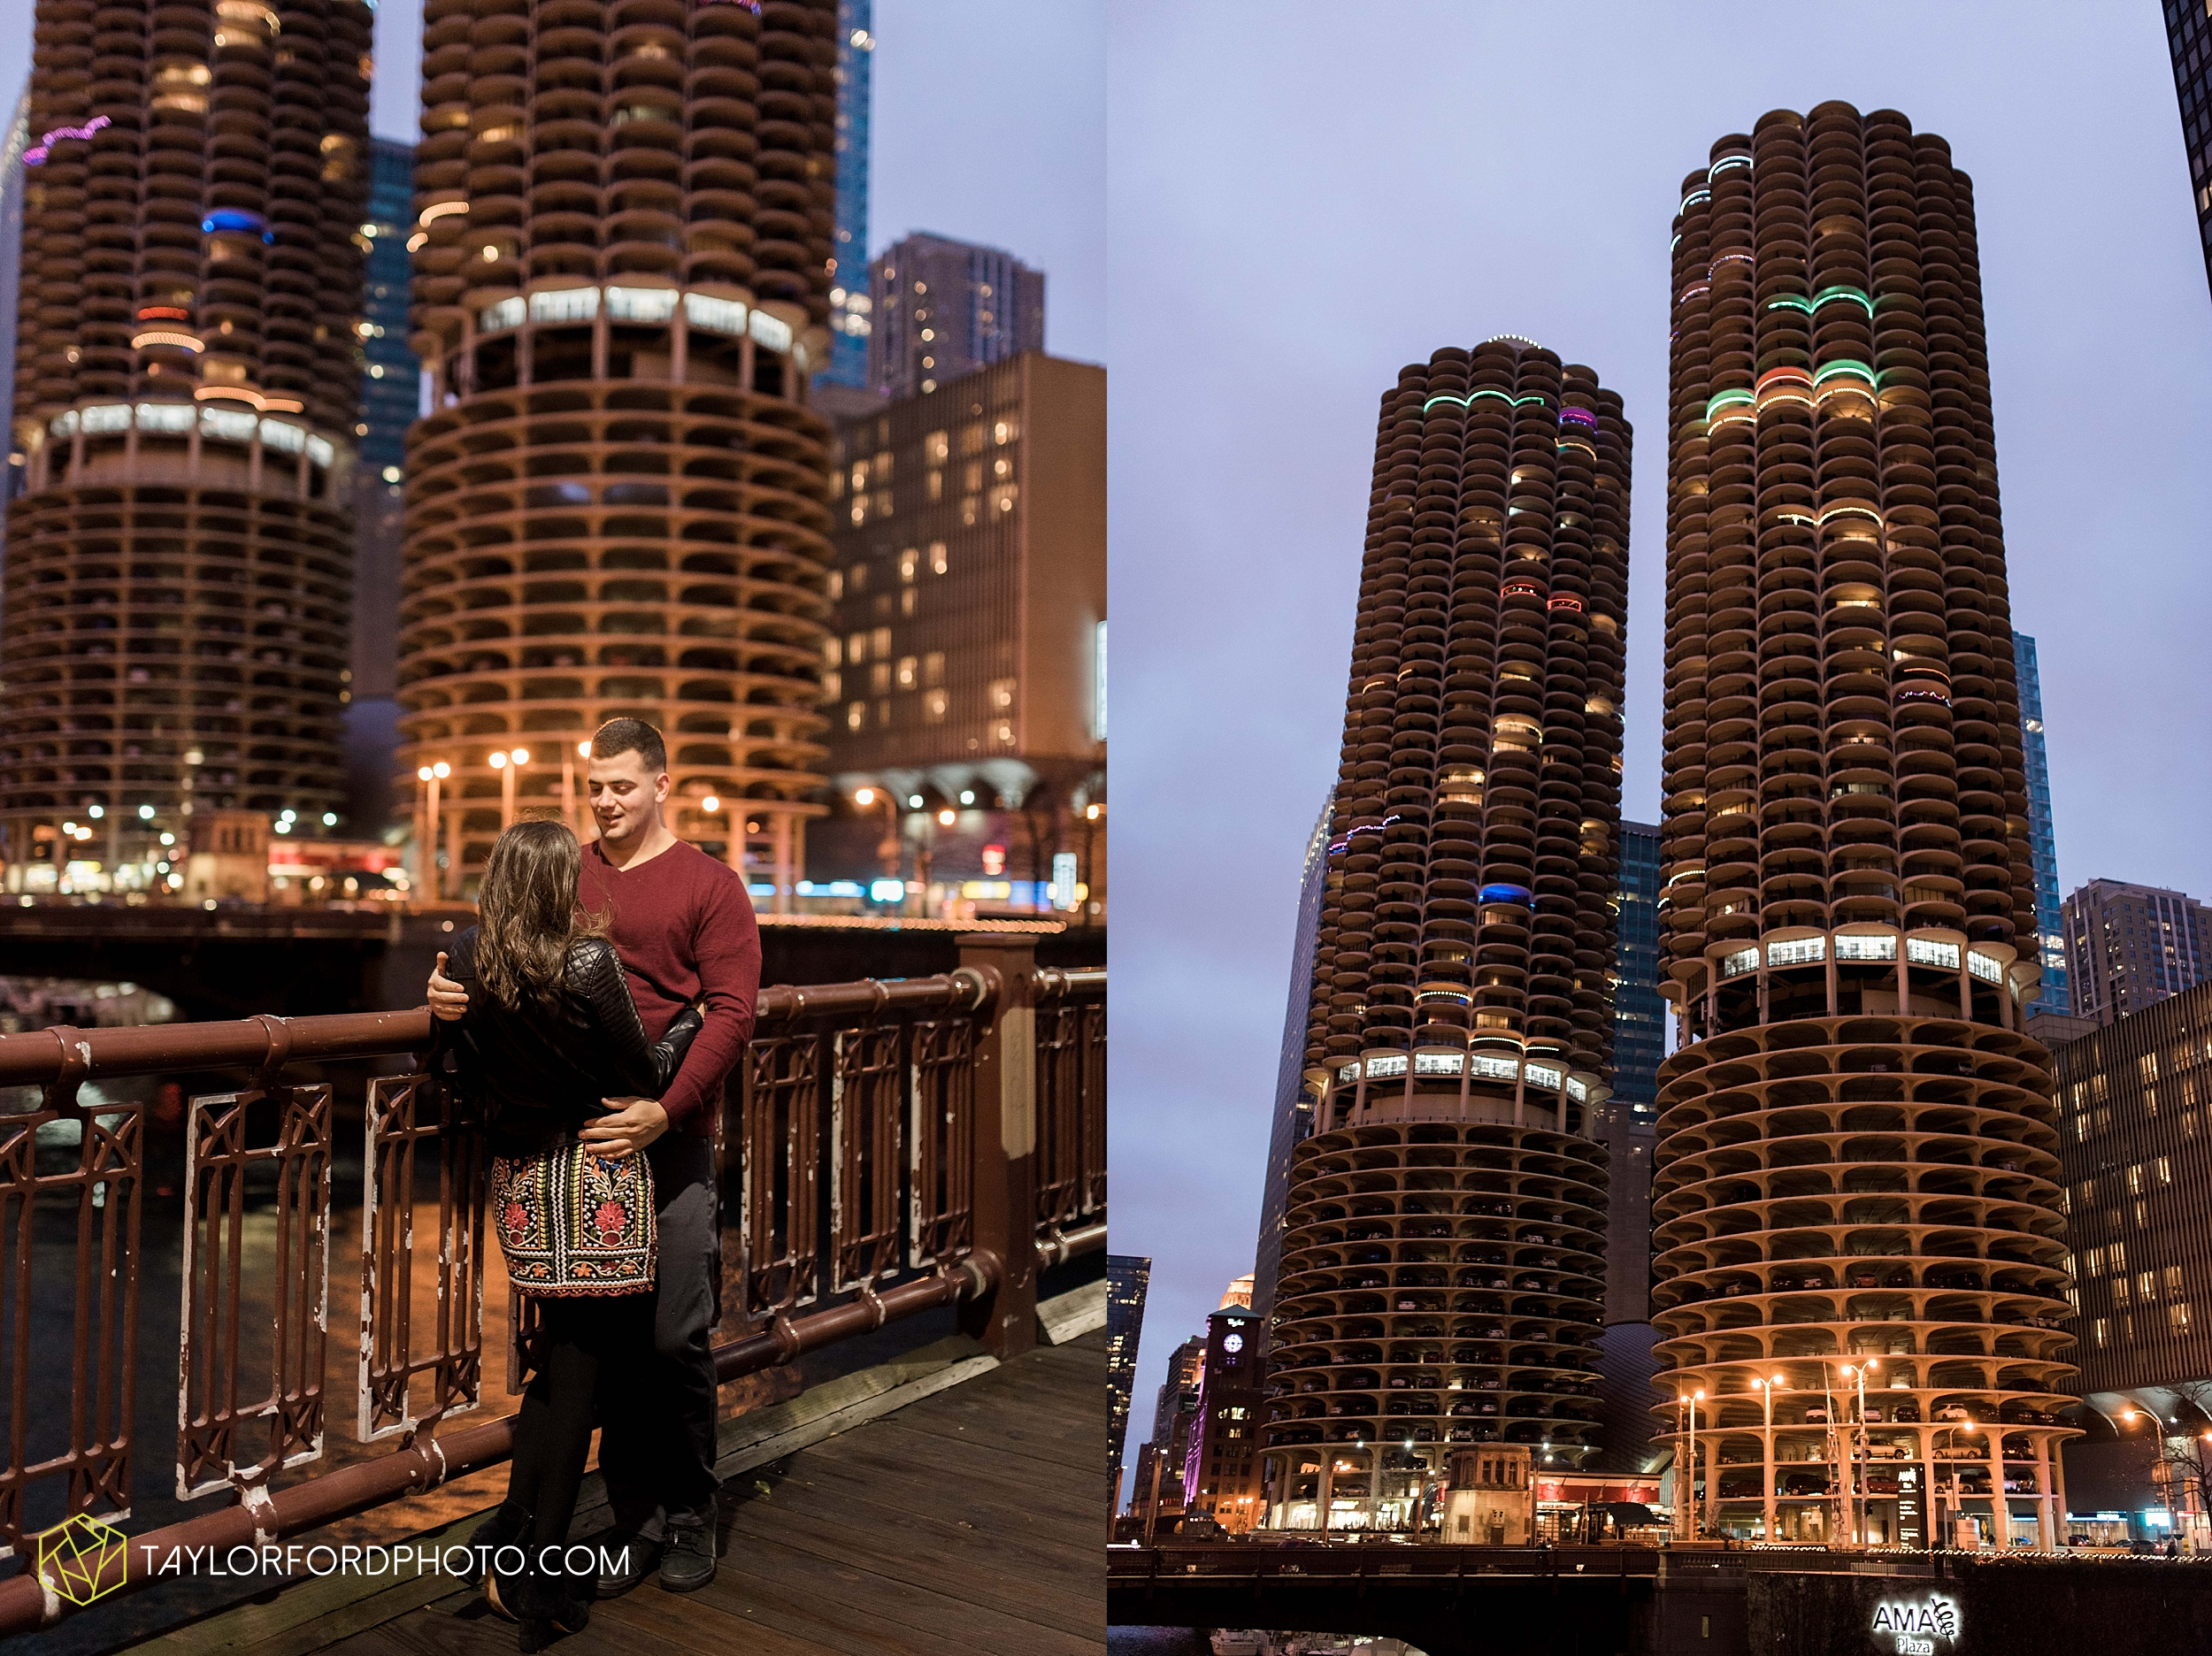 chicago-illinois-engagement-lincoln-park-zoo-downtown-millenium-park-cloud-gate-photographer-Taylor-Ford-Photography_6061.jpg